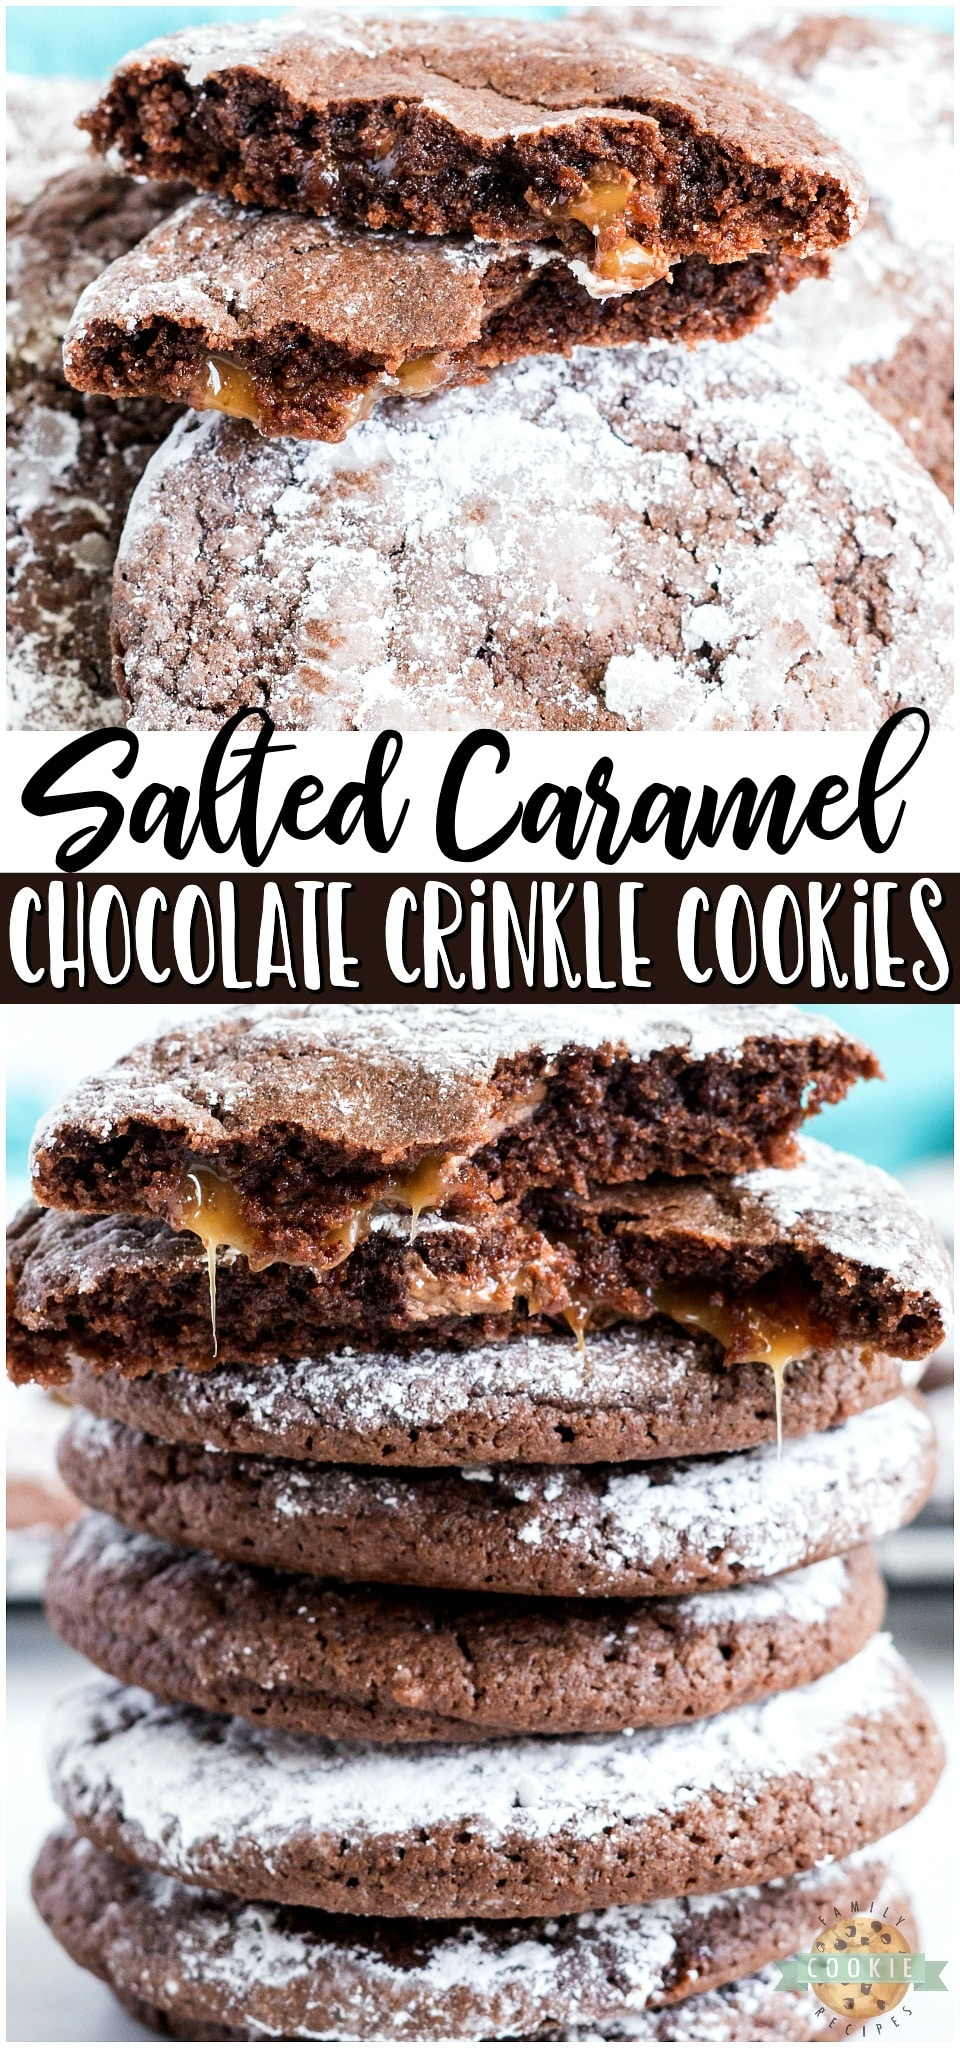 Caramel chocolate crinkle cookies are soft & chewy cookies with a salted caramel filling. Traditional Chocolate Crinkle Cookies with caramel filling that everyone loves!